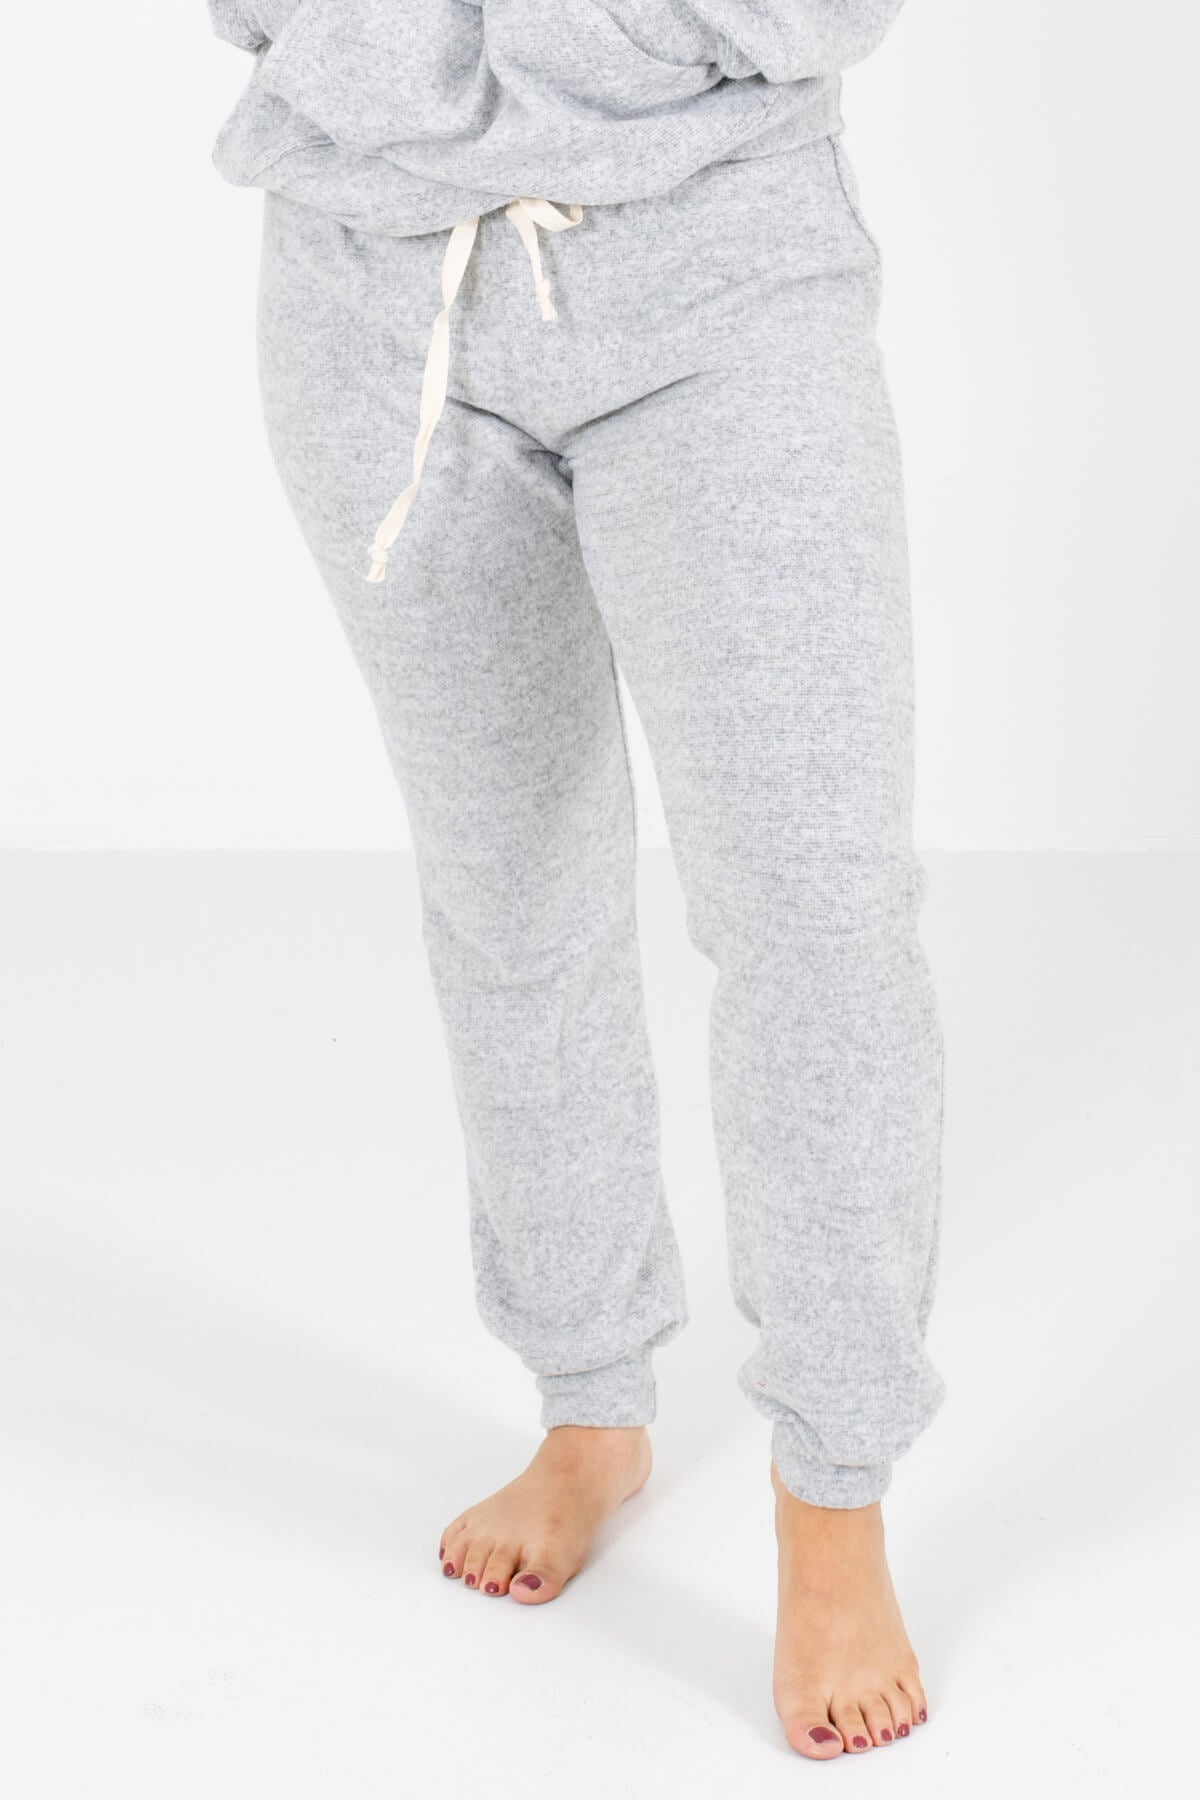 Heather Gray Drawstring Elastic Waistband Boutique Joggers for Women